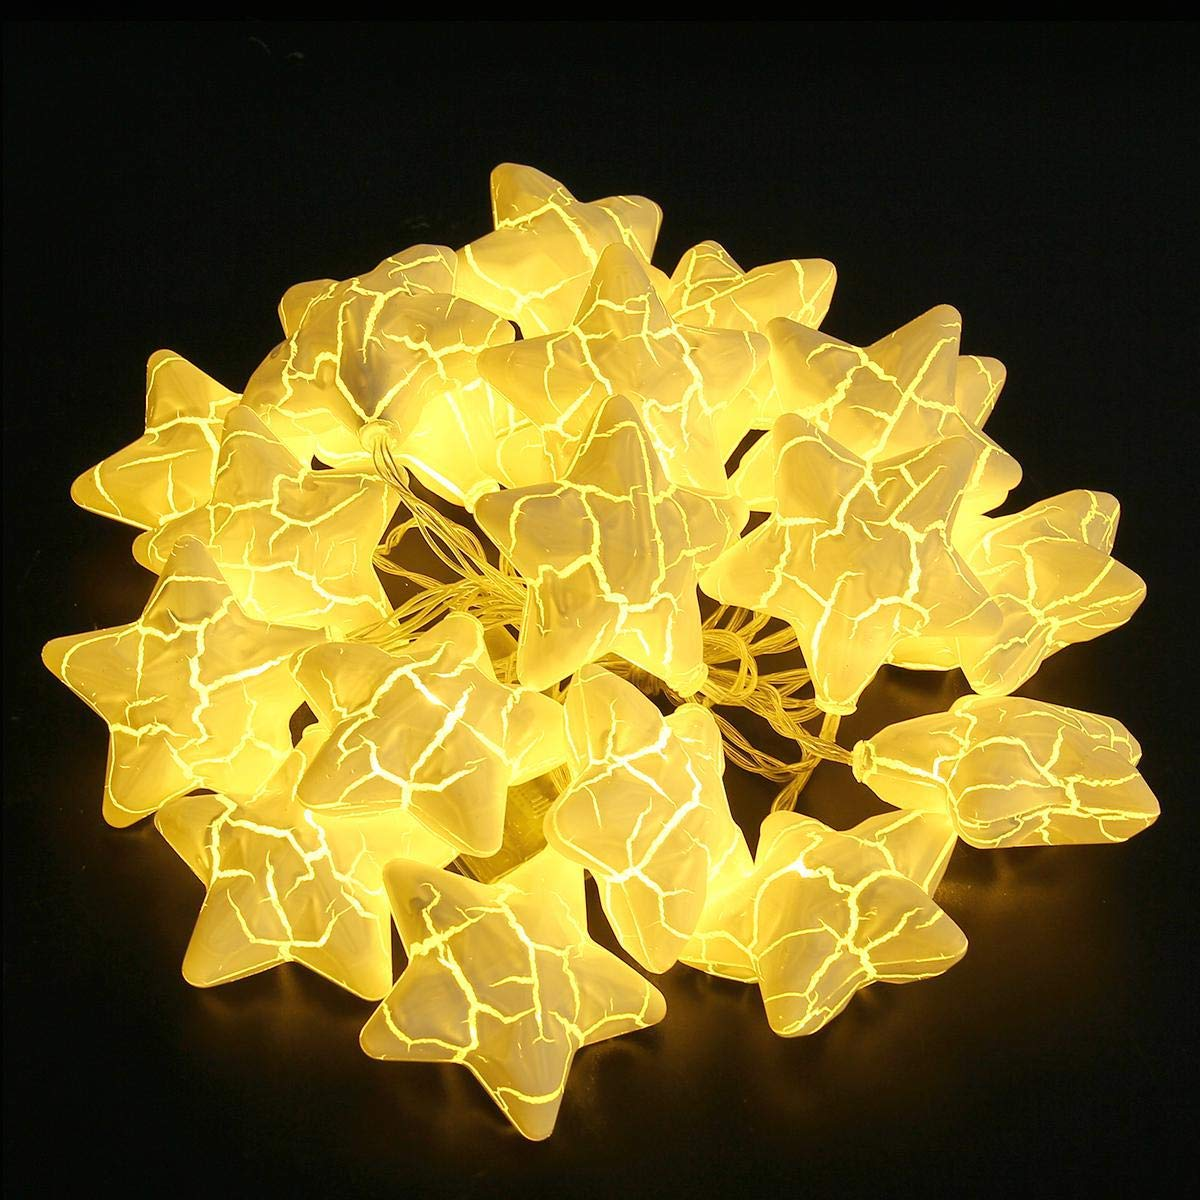 Get Quotations 20 Led Star String Lights Battery Operared Kids Room Decor,umiwe Starry Shape Fairy